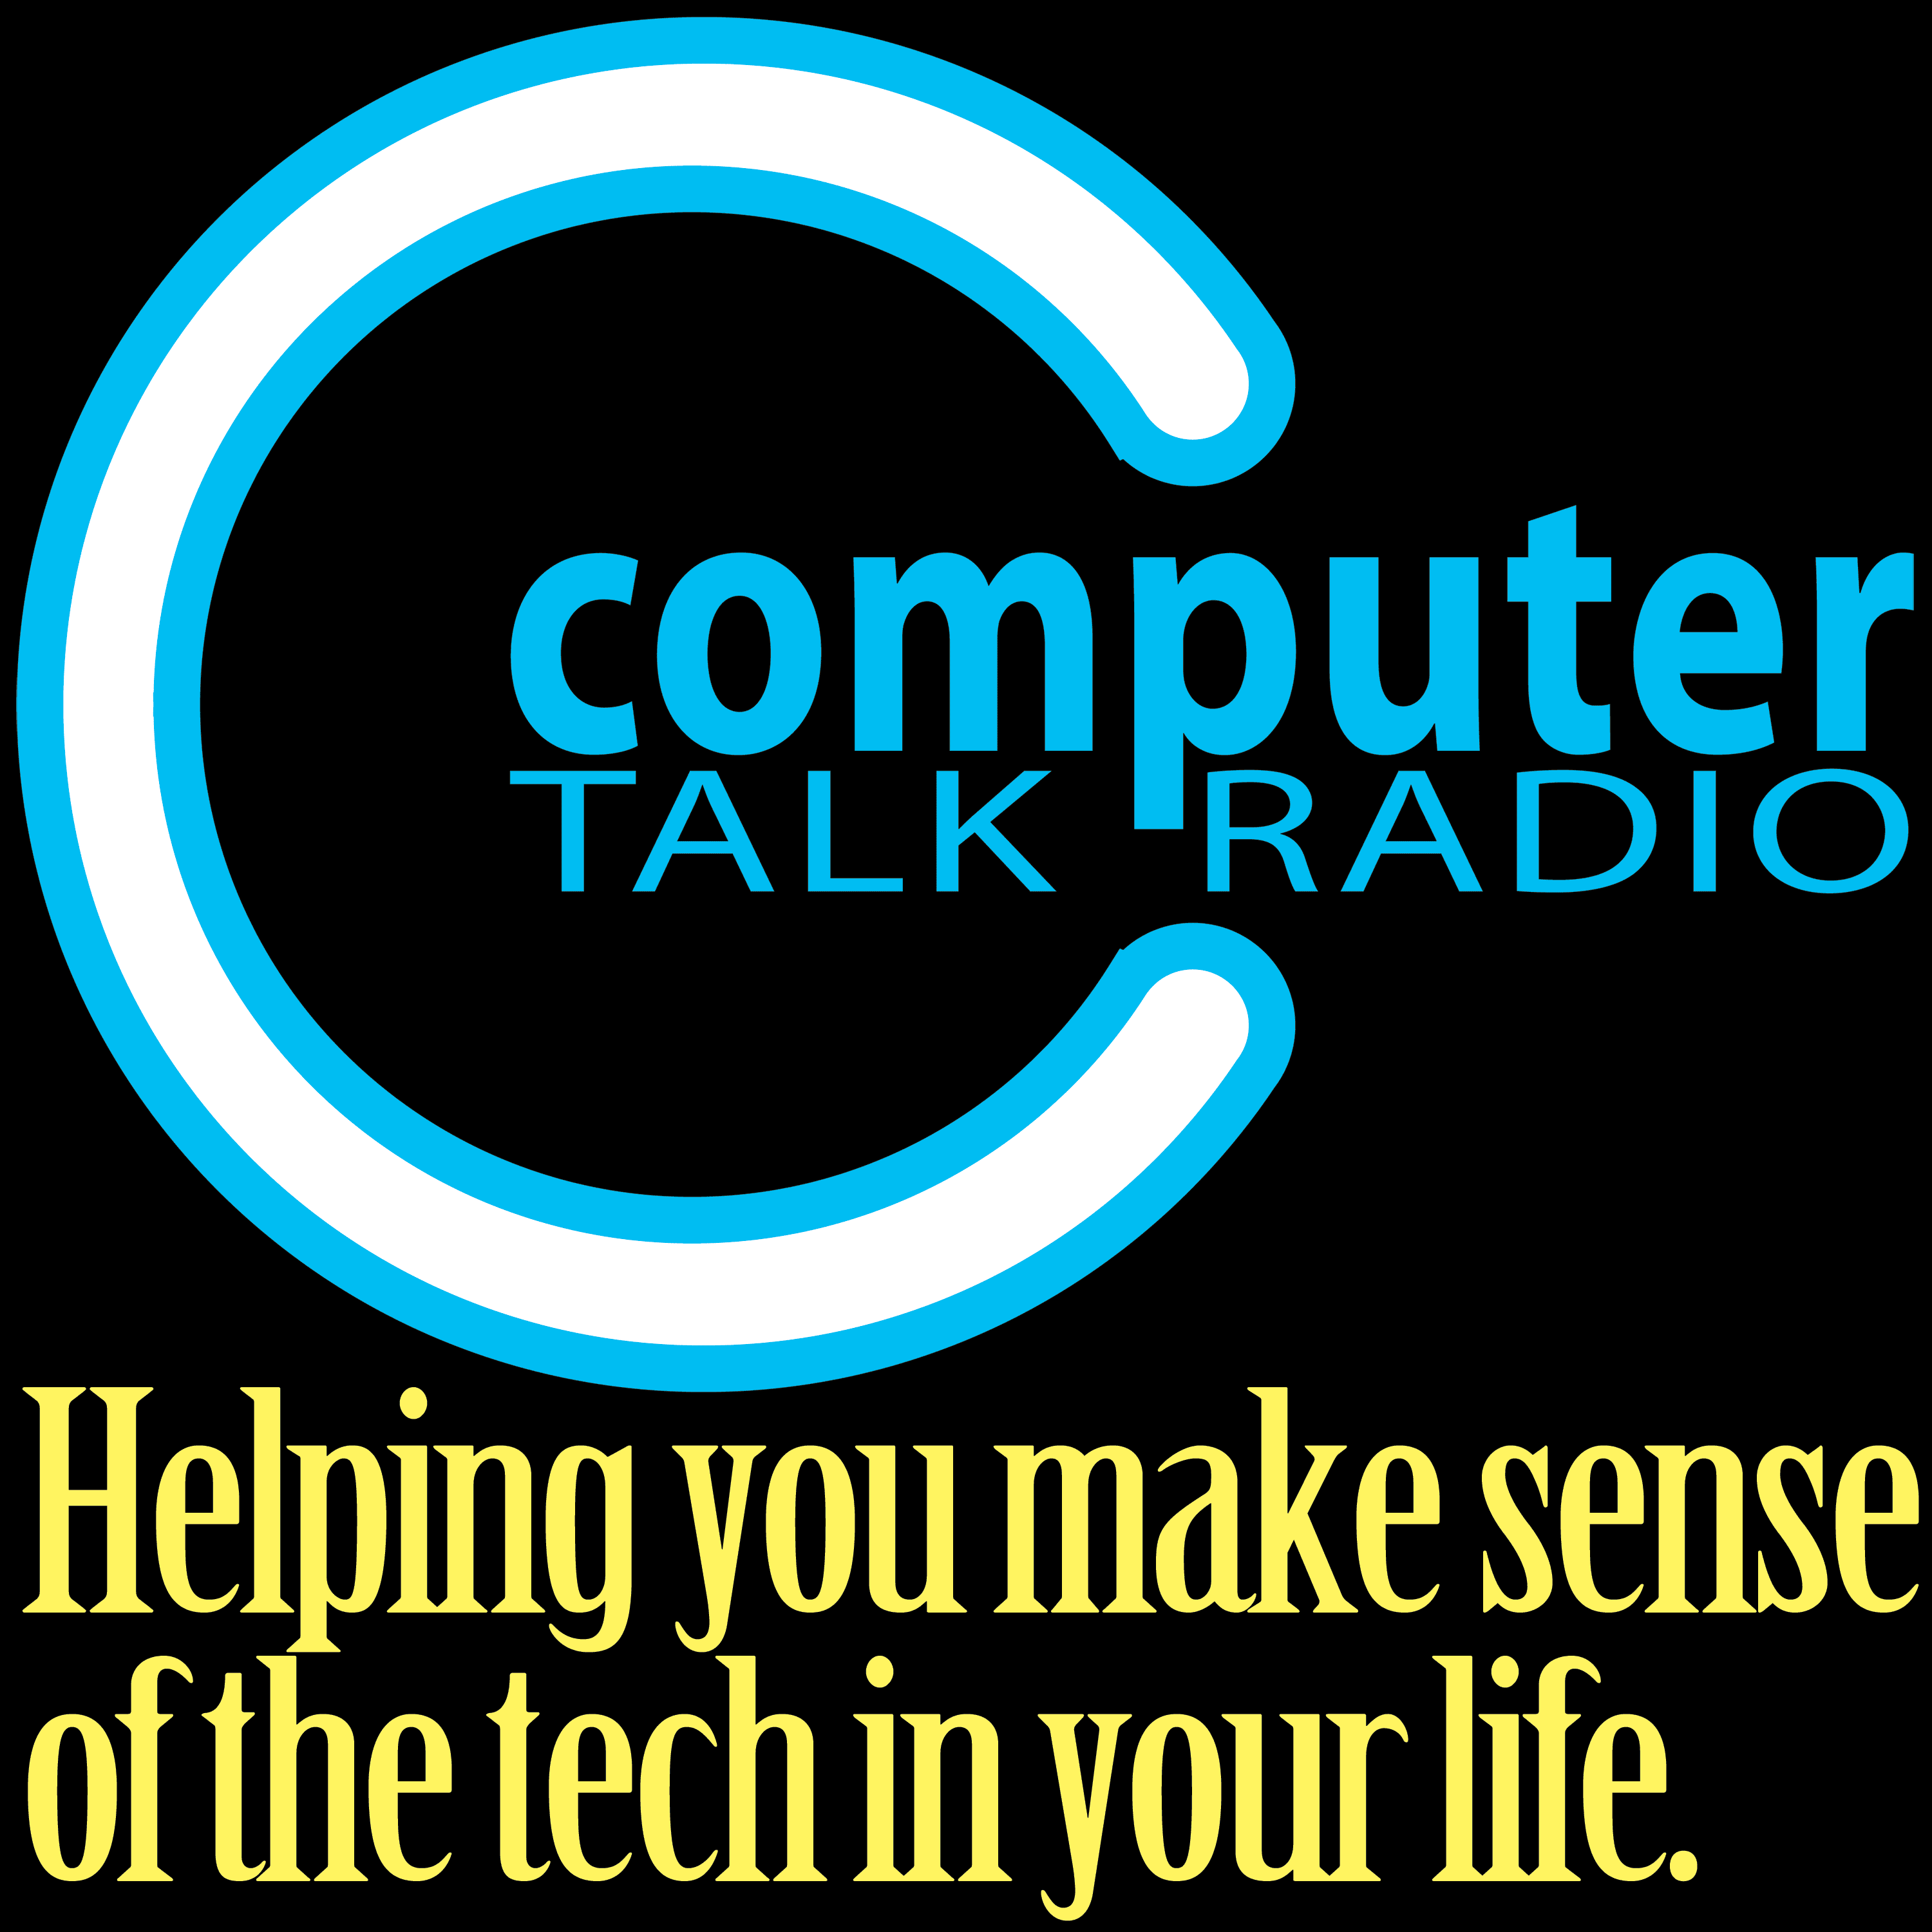 A highlight from Computer Talk Radio Broadcast 10-09-2021